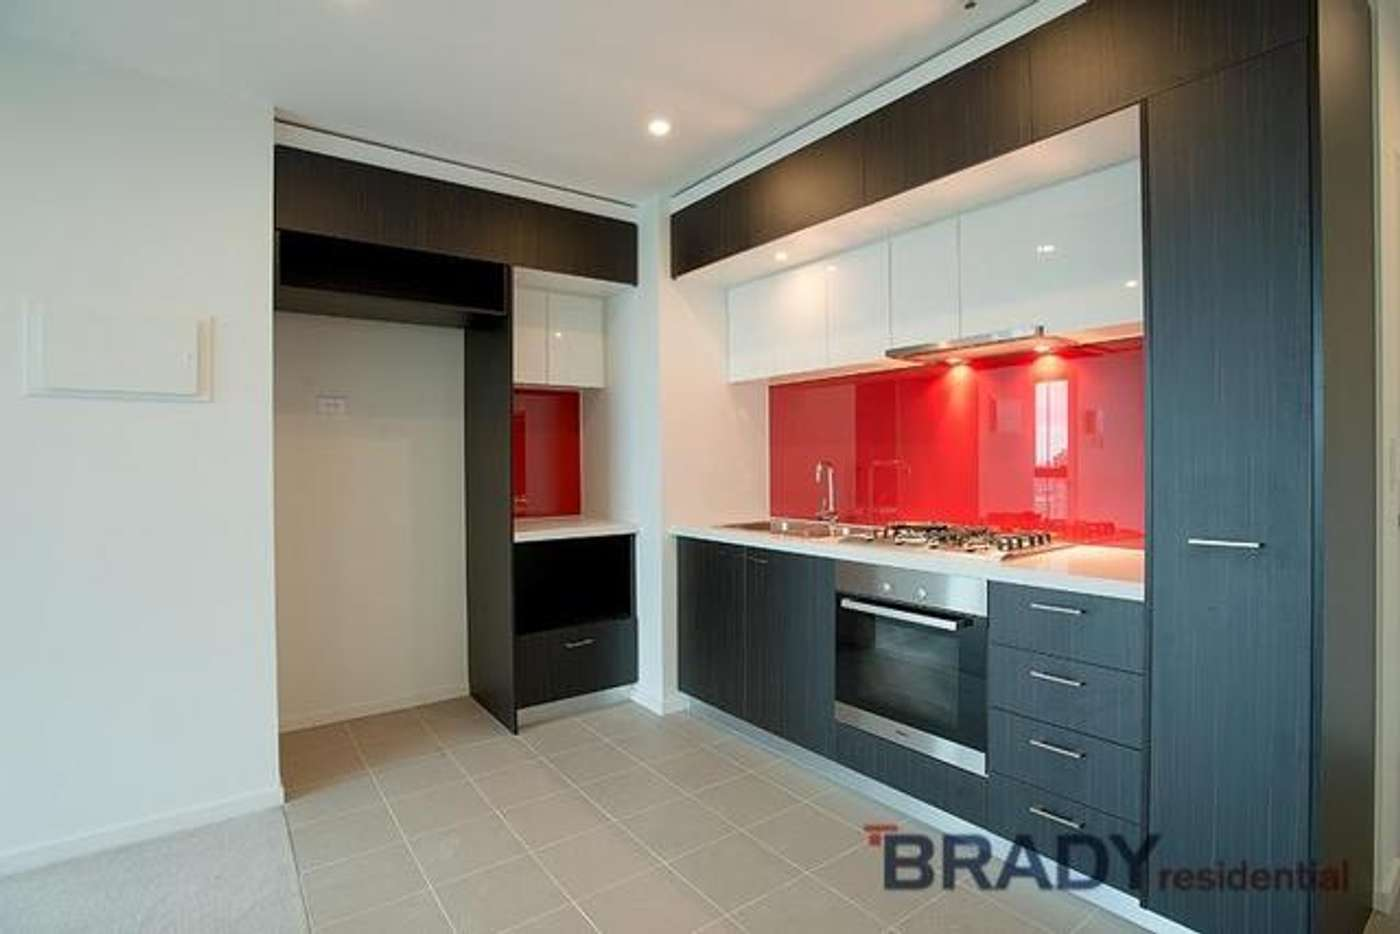 Main view of Homely apartment listing, 3501/8 Sutherland Street, Melbourne VIC 3000